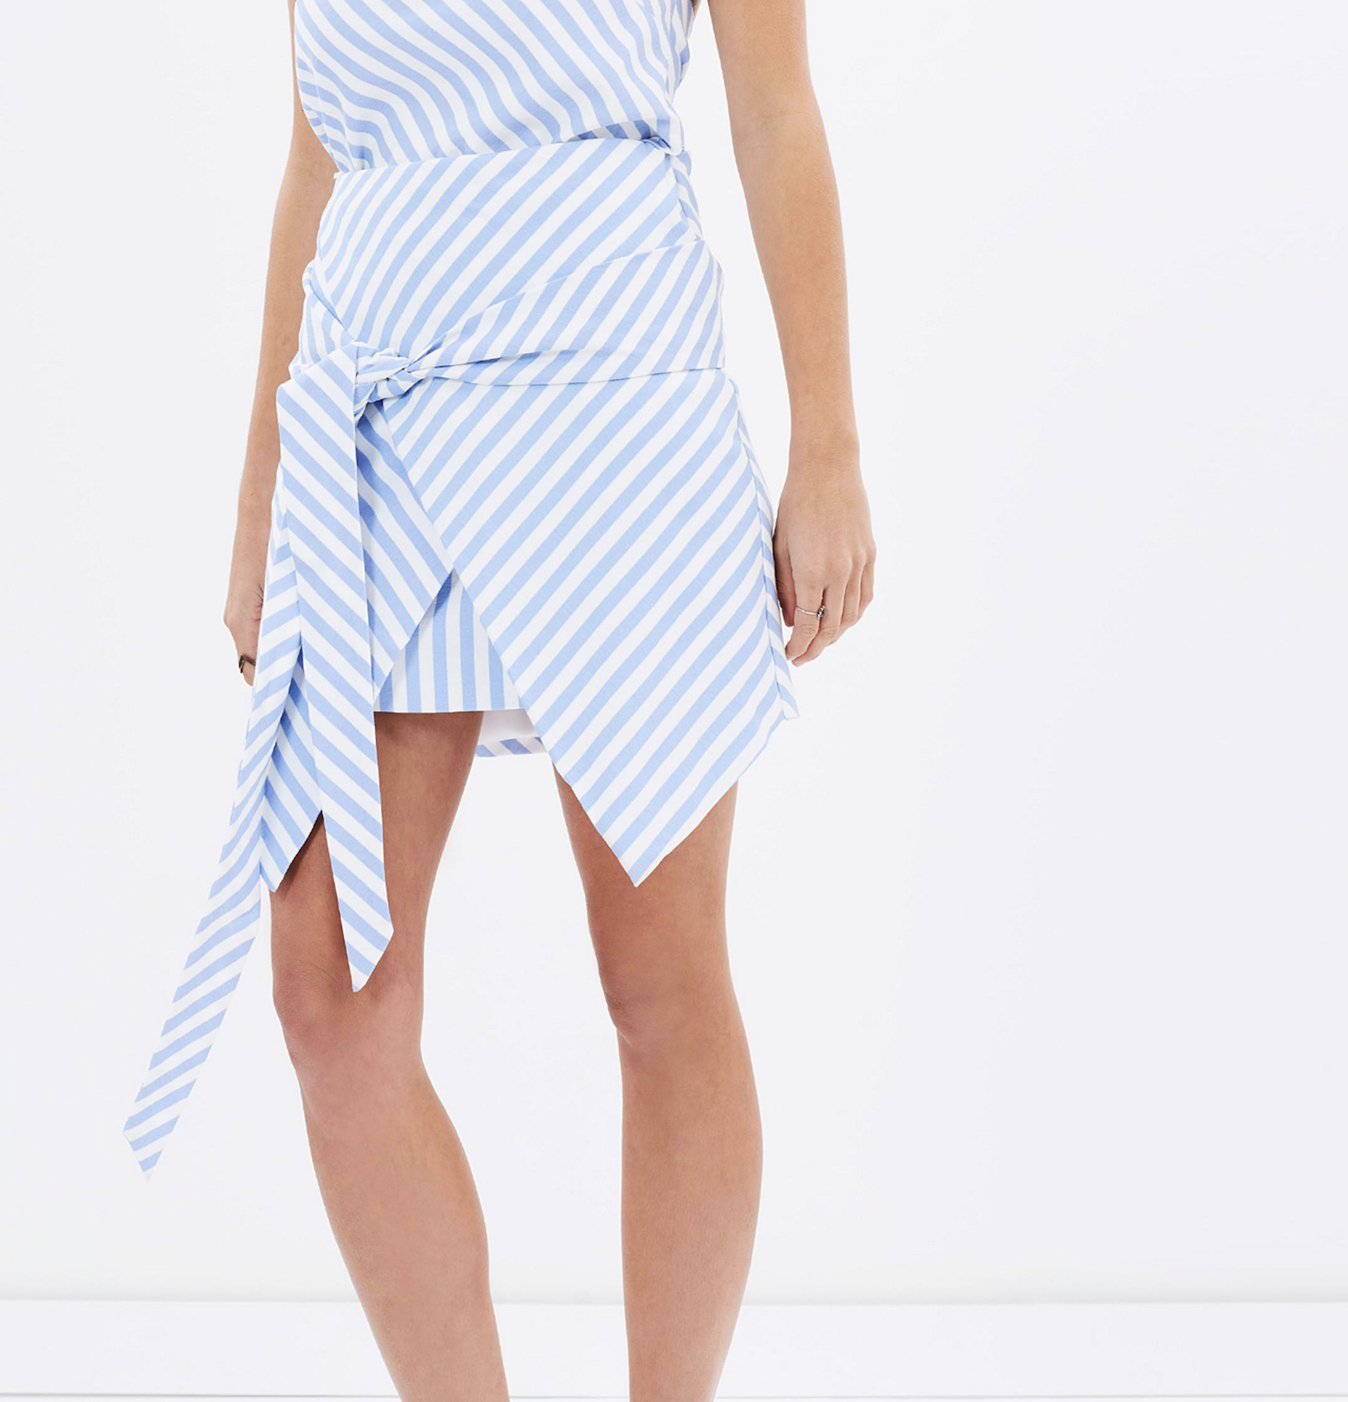 Finders Keepers better days skirt $169.96